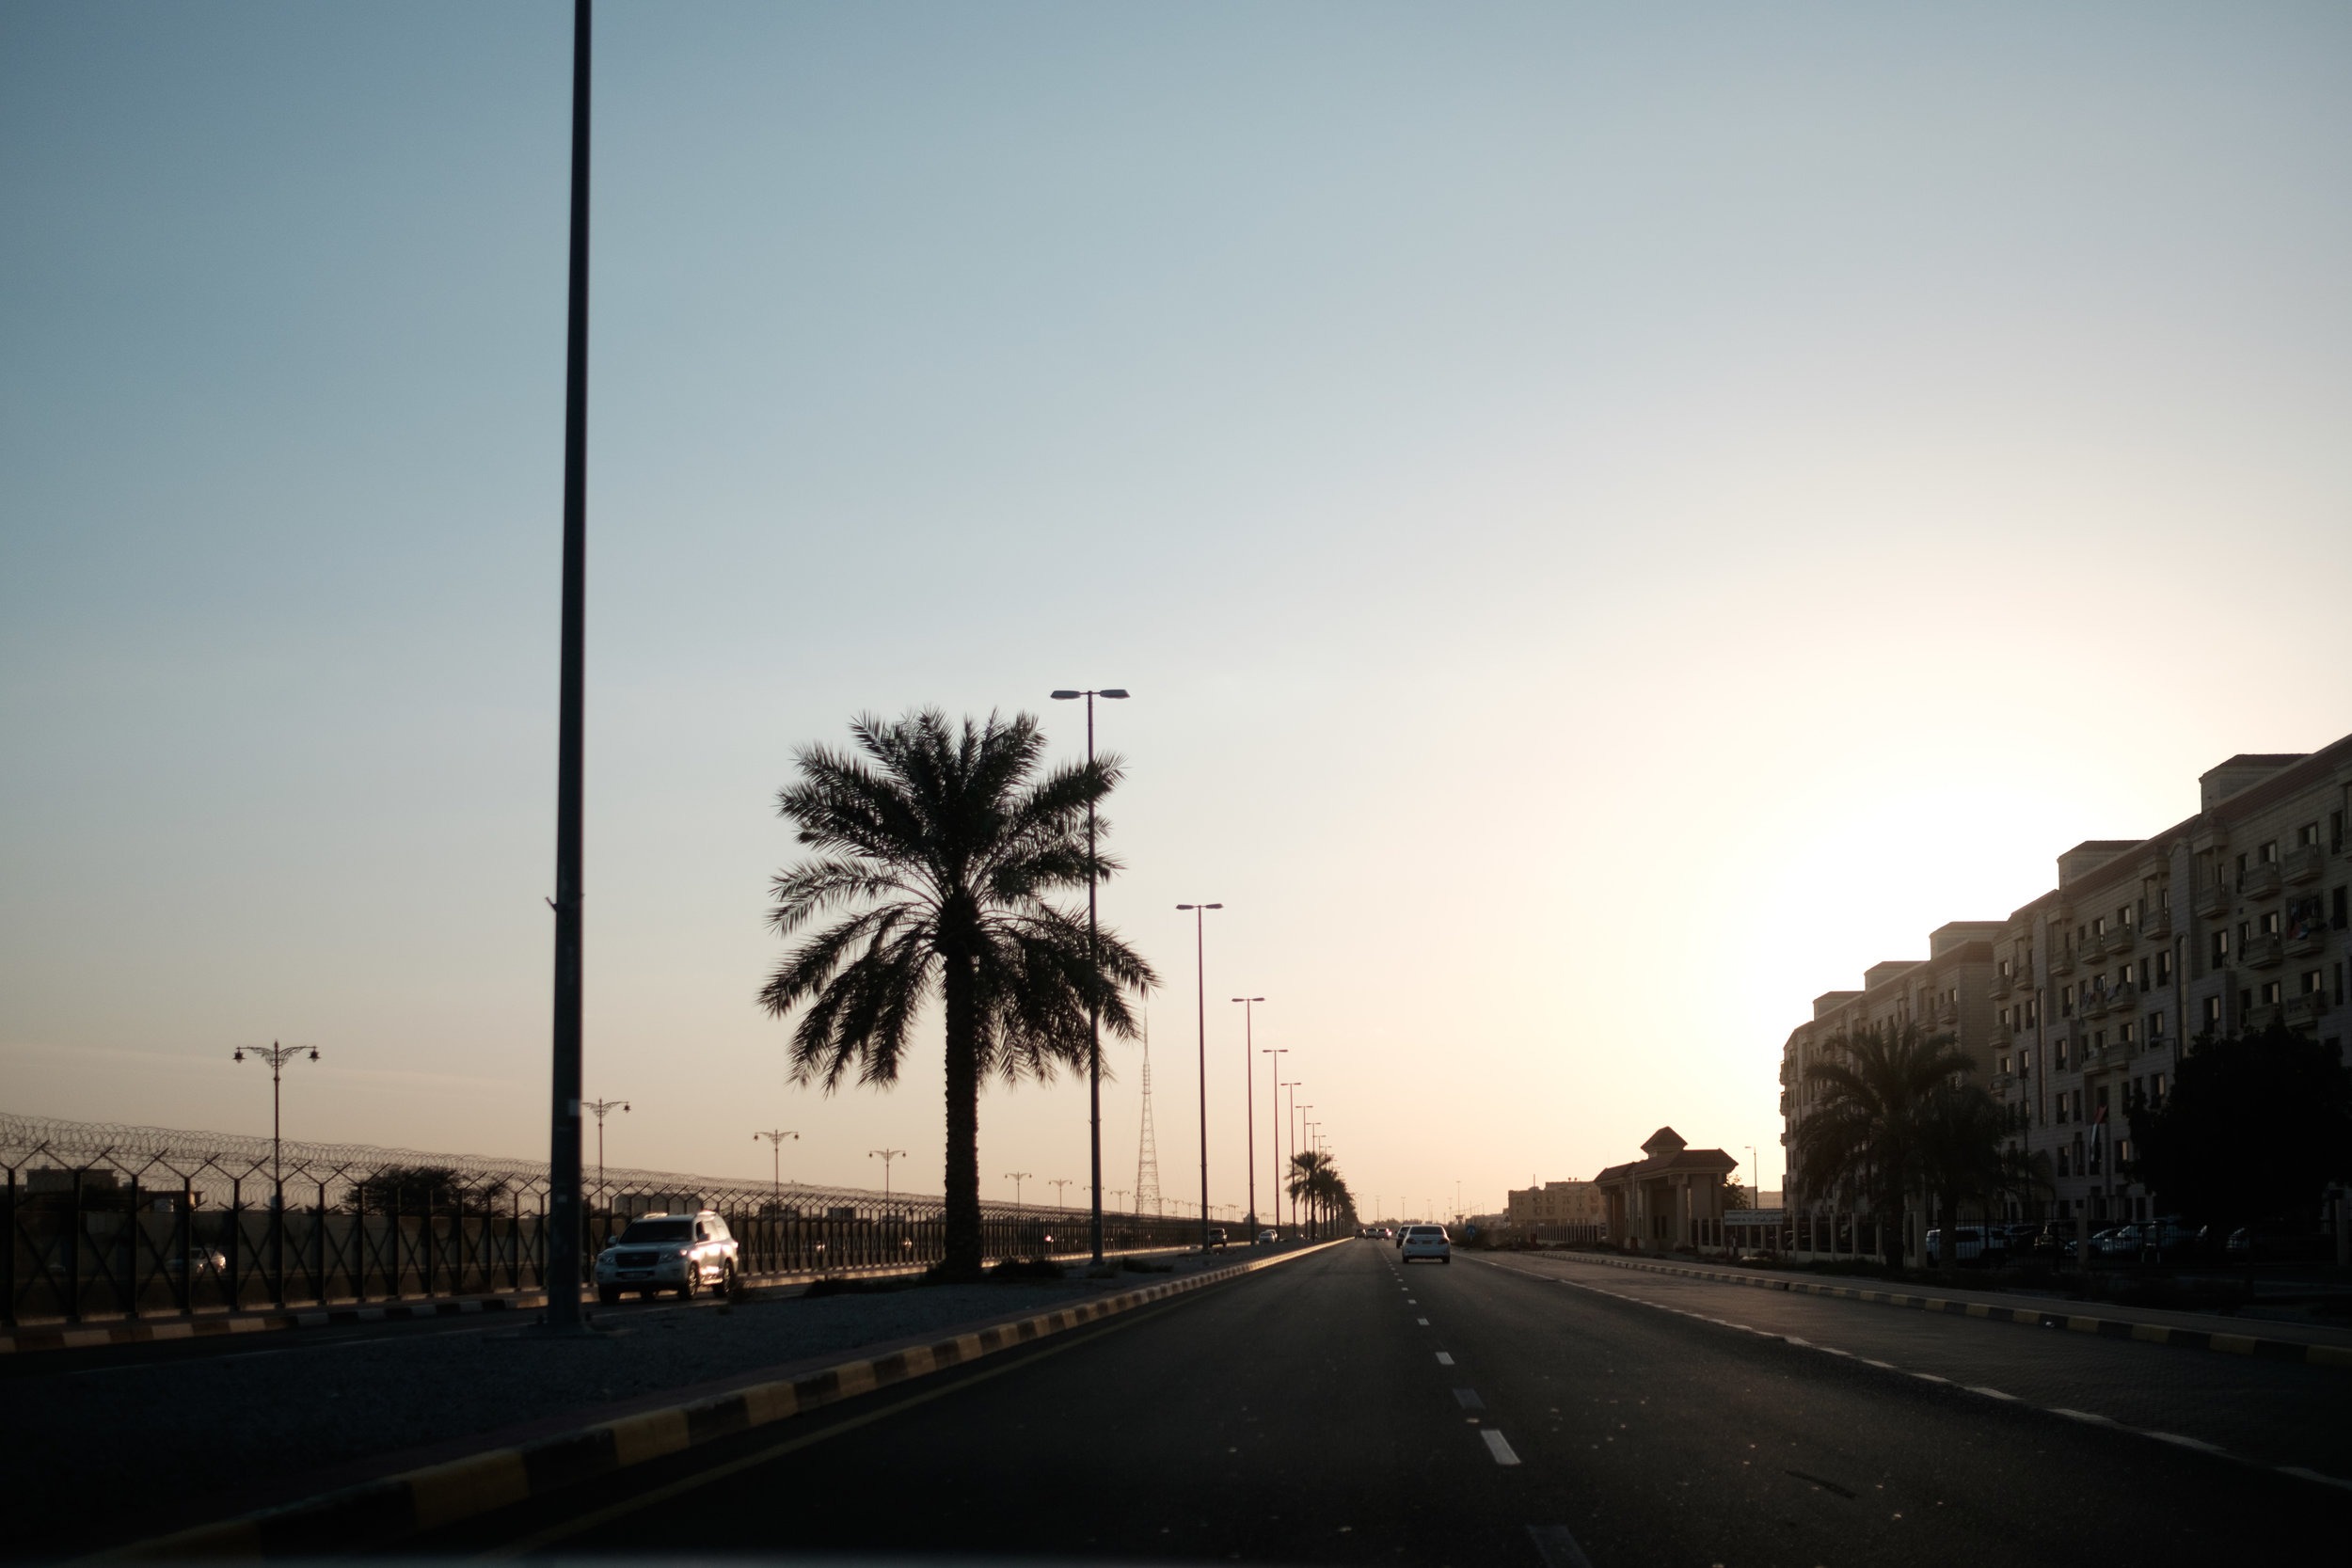 Evening drive along the Oman border